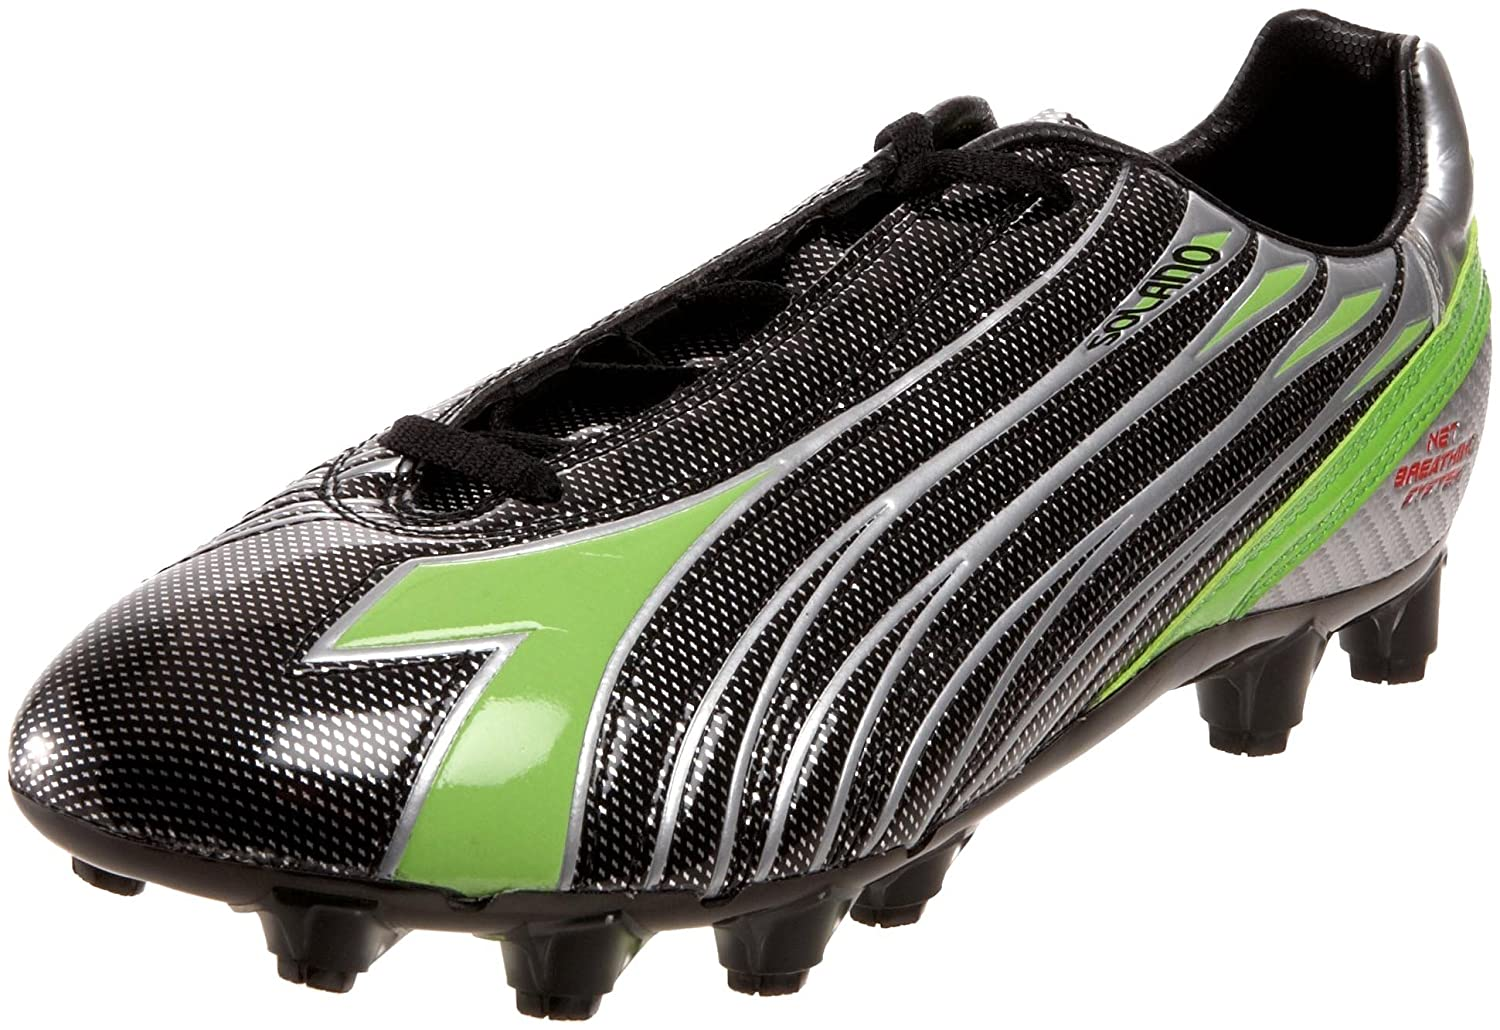 Diadora メンズ B004U8PP4Y 8 D(M) US|Black/Metal/Green Black/Metal/Green 8 D(M) US